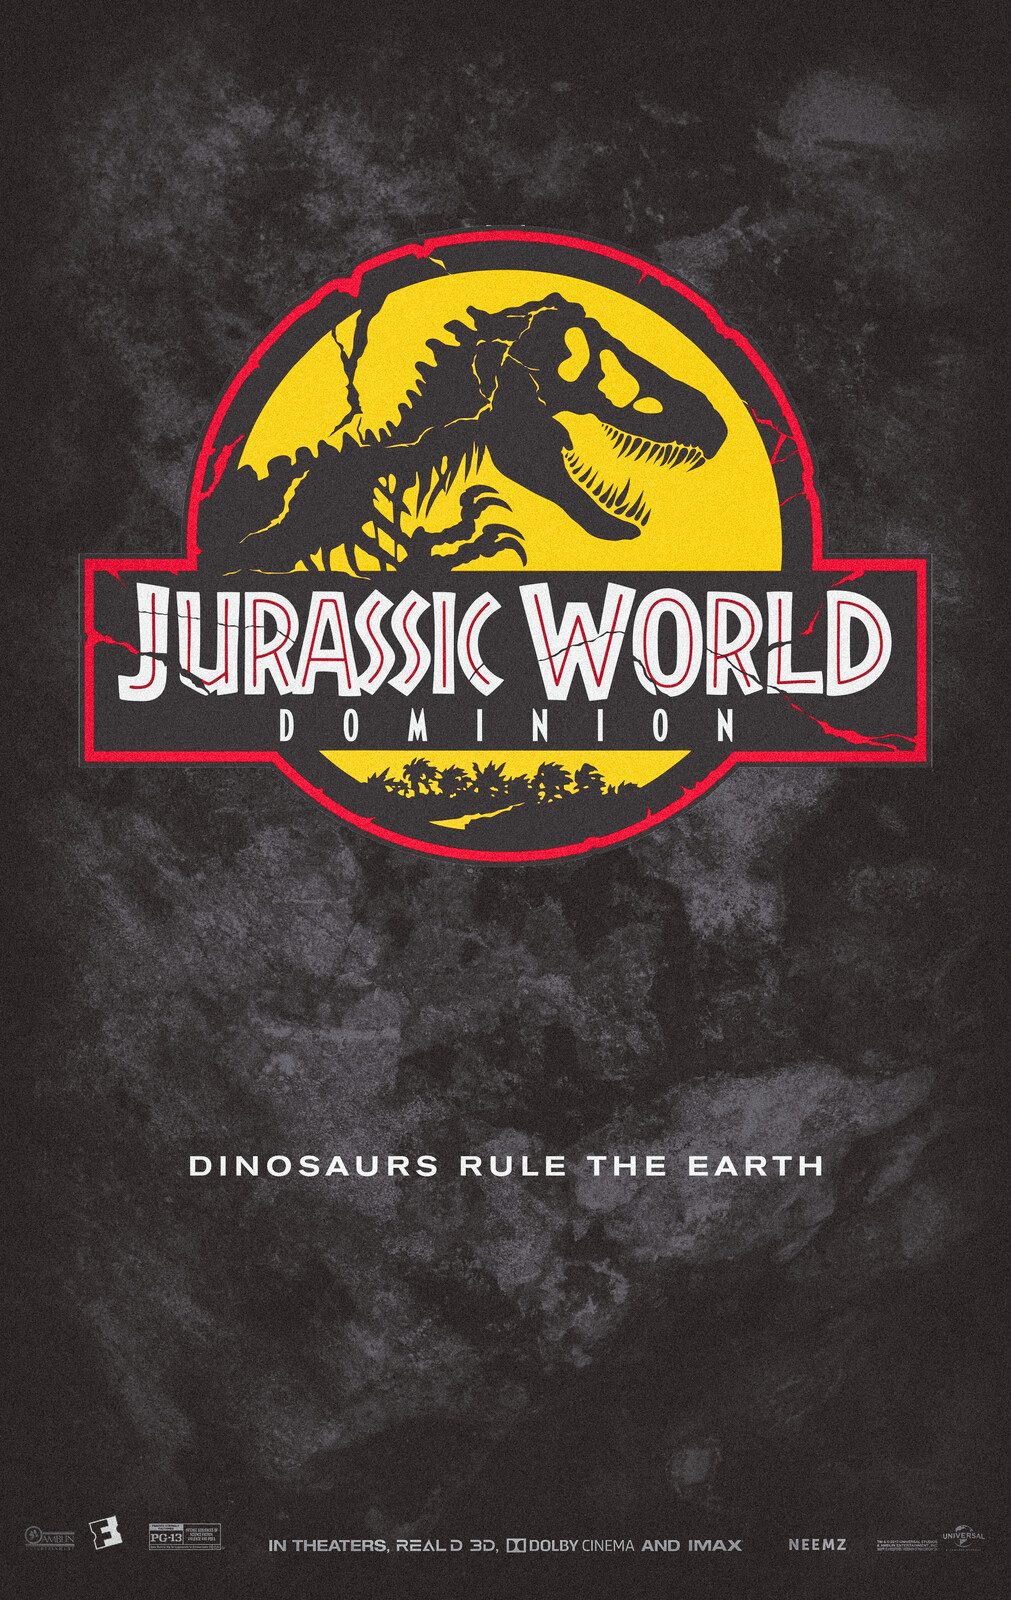 Jurassic World Dominion Movie Poster (Concept)